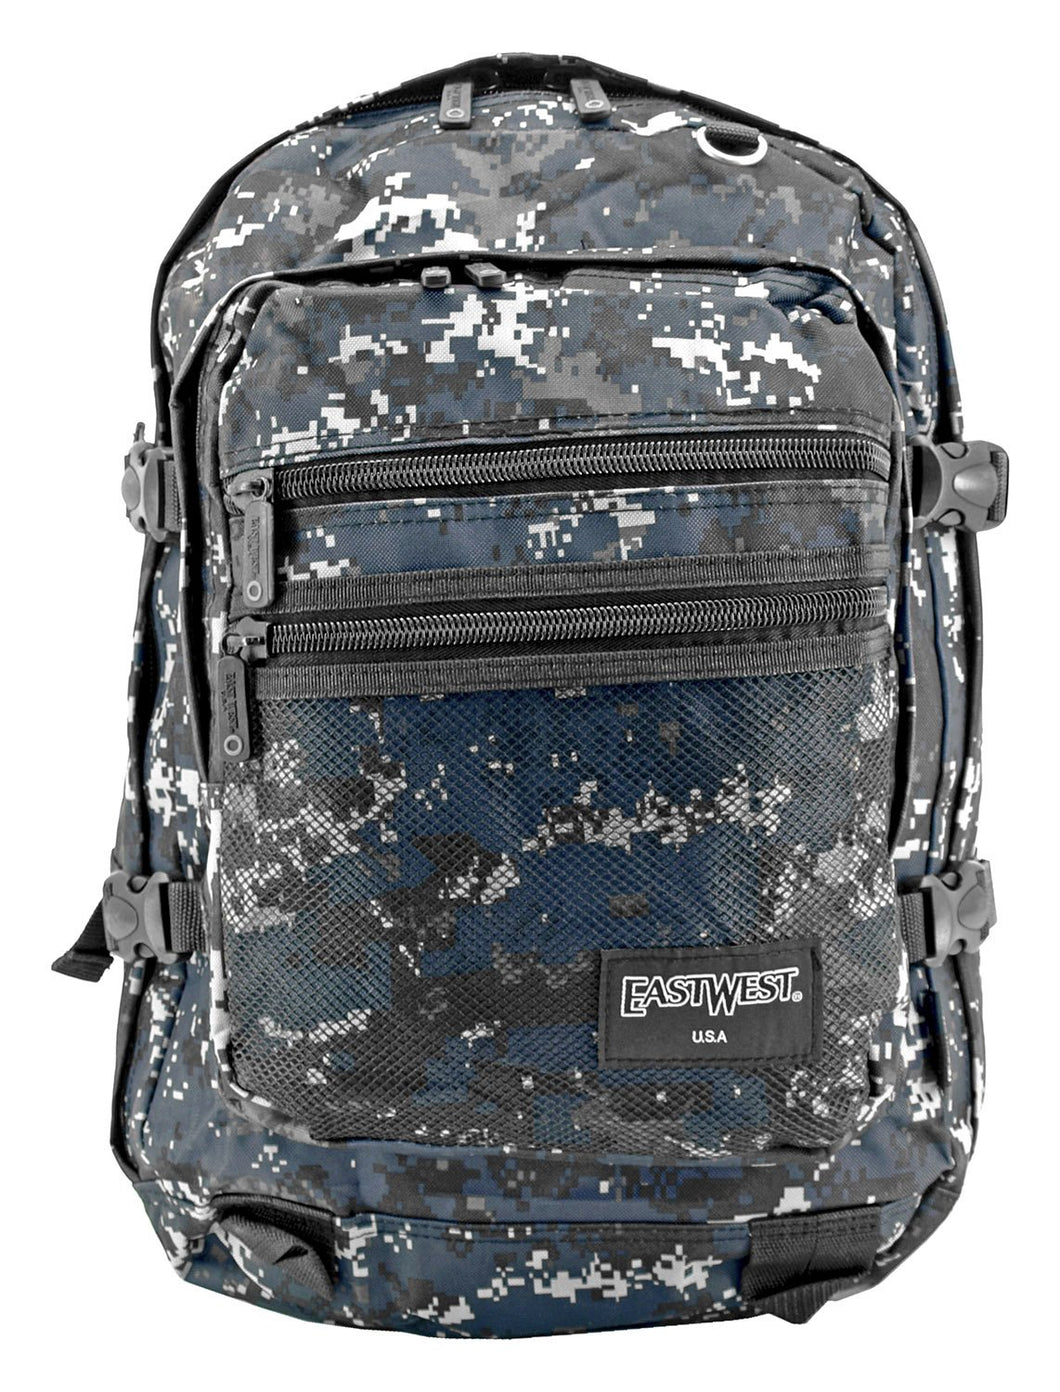 EASTWEST USA BLUE DIGI CAMO ALL SEASON BACKPACK - Fulfillment Center